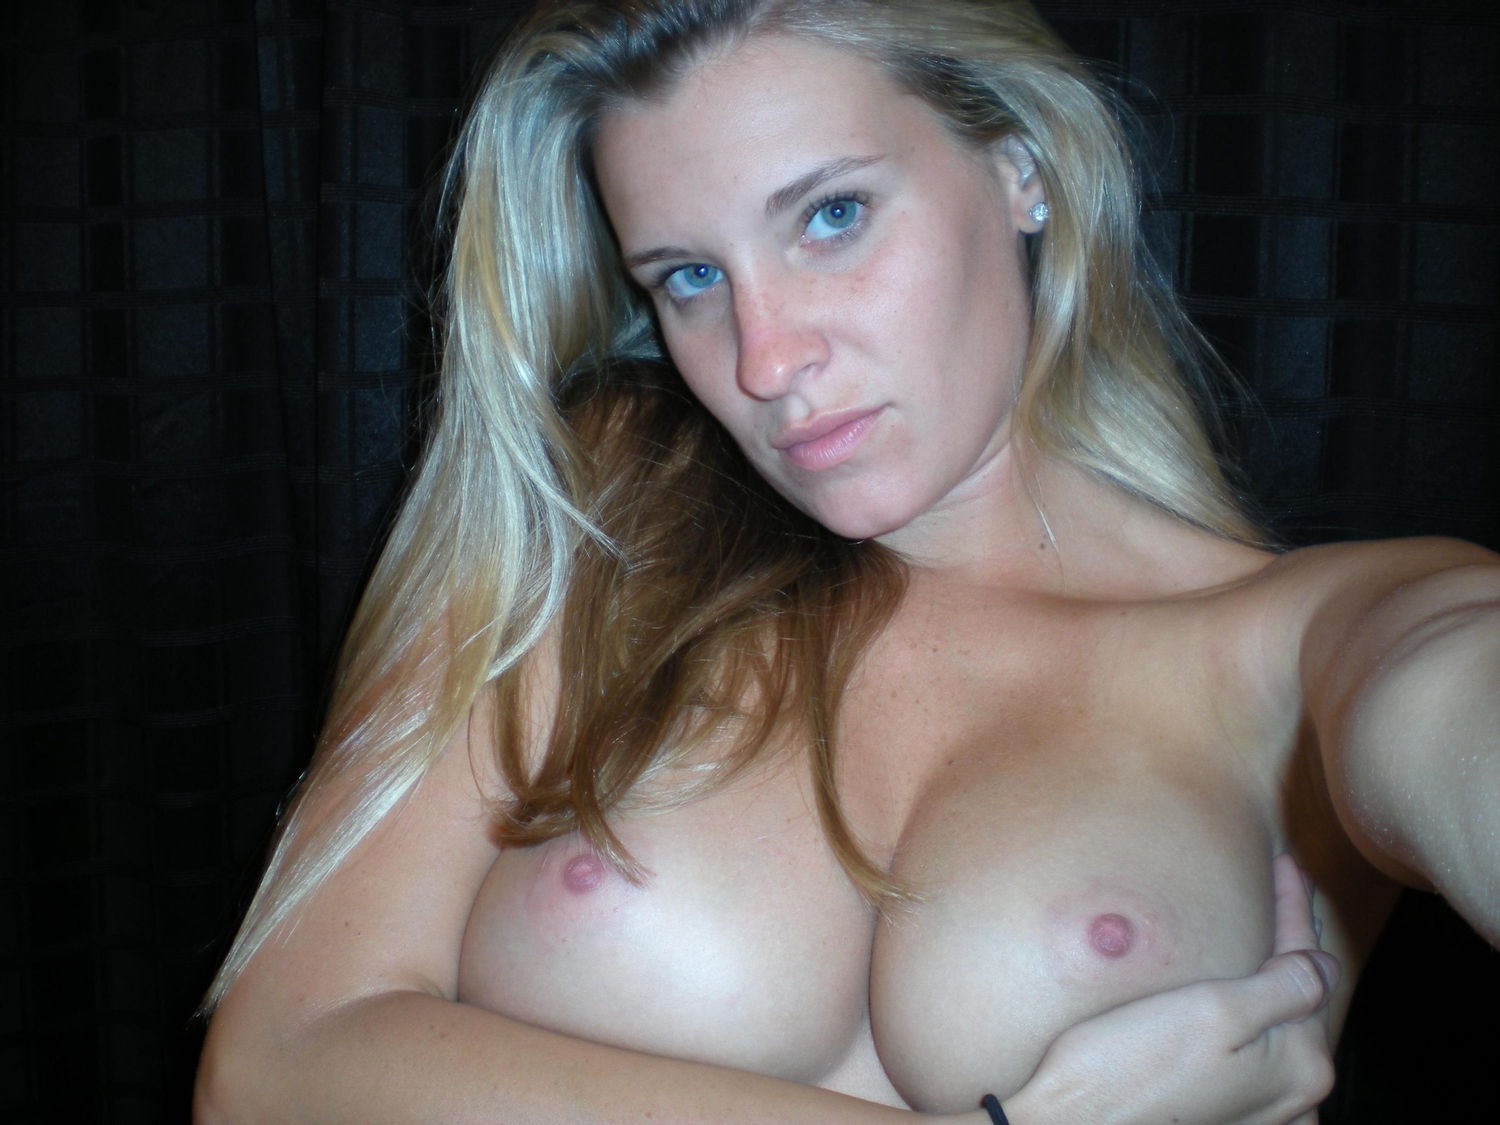 Busty lady exposing her perfect boobs and picturing herself